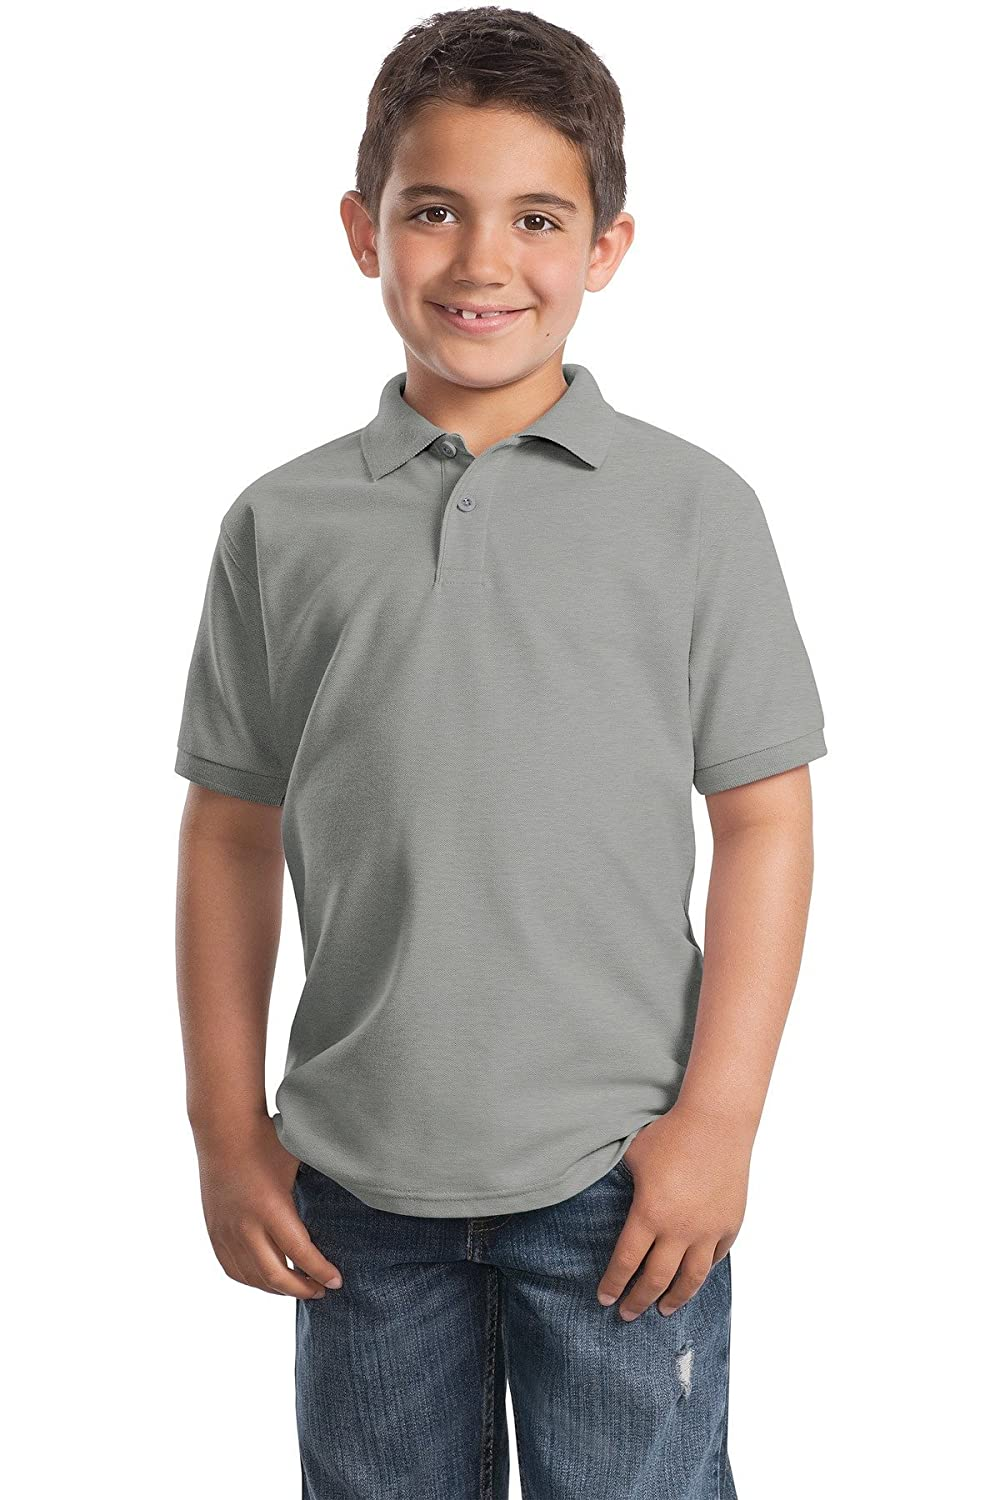 Port Authority Youth Silk Touch Polo Y500 Cool Grey L